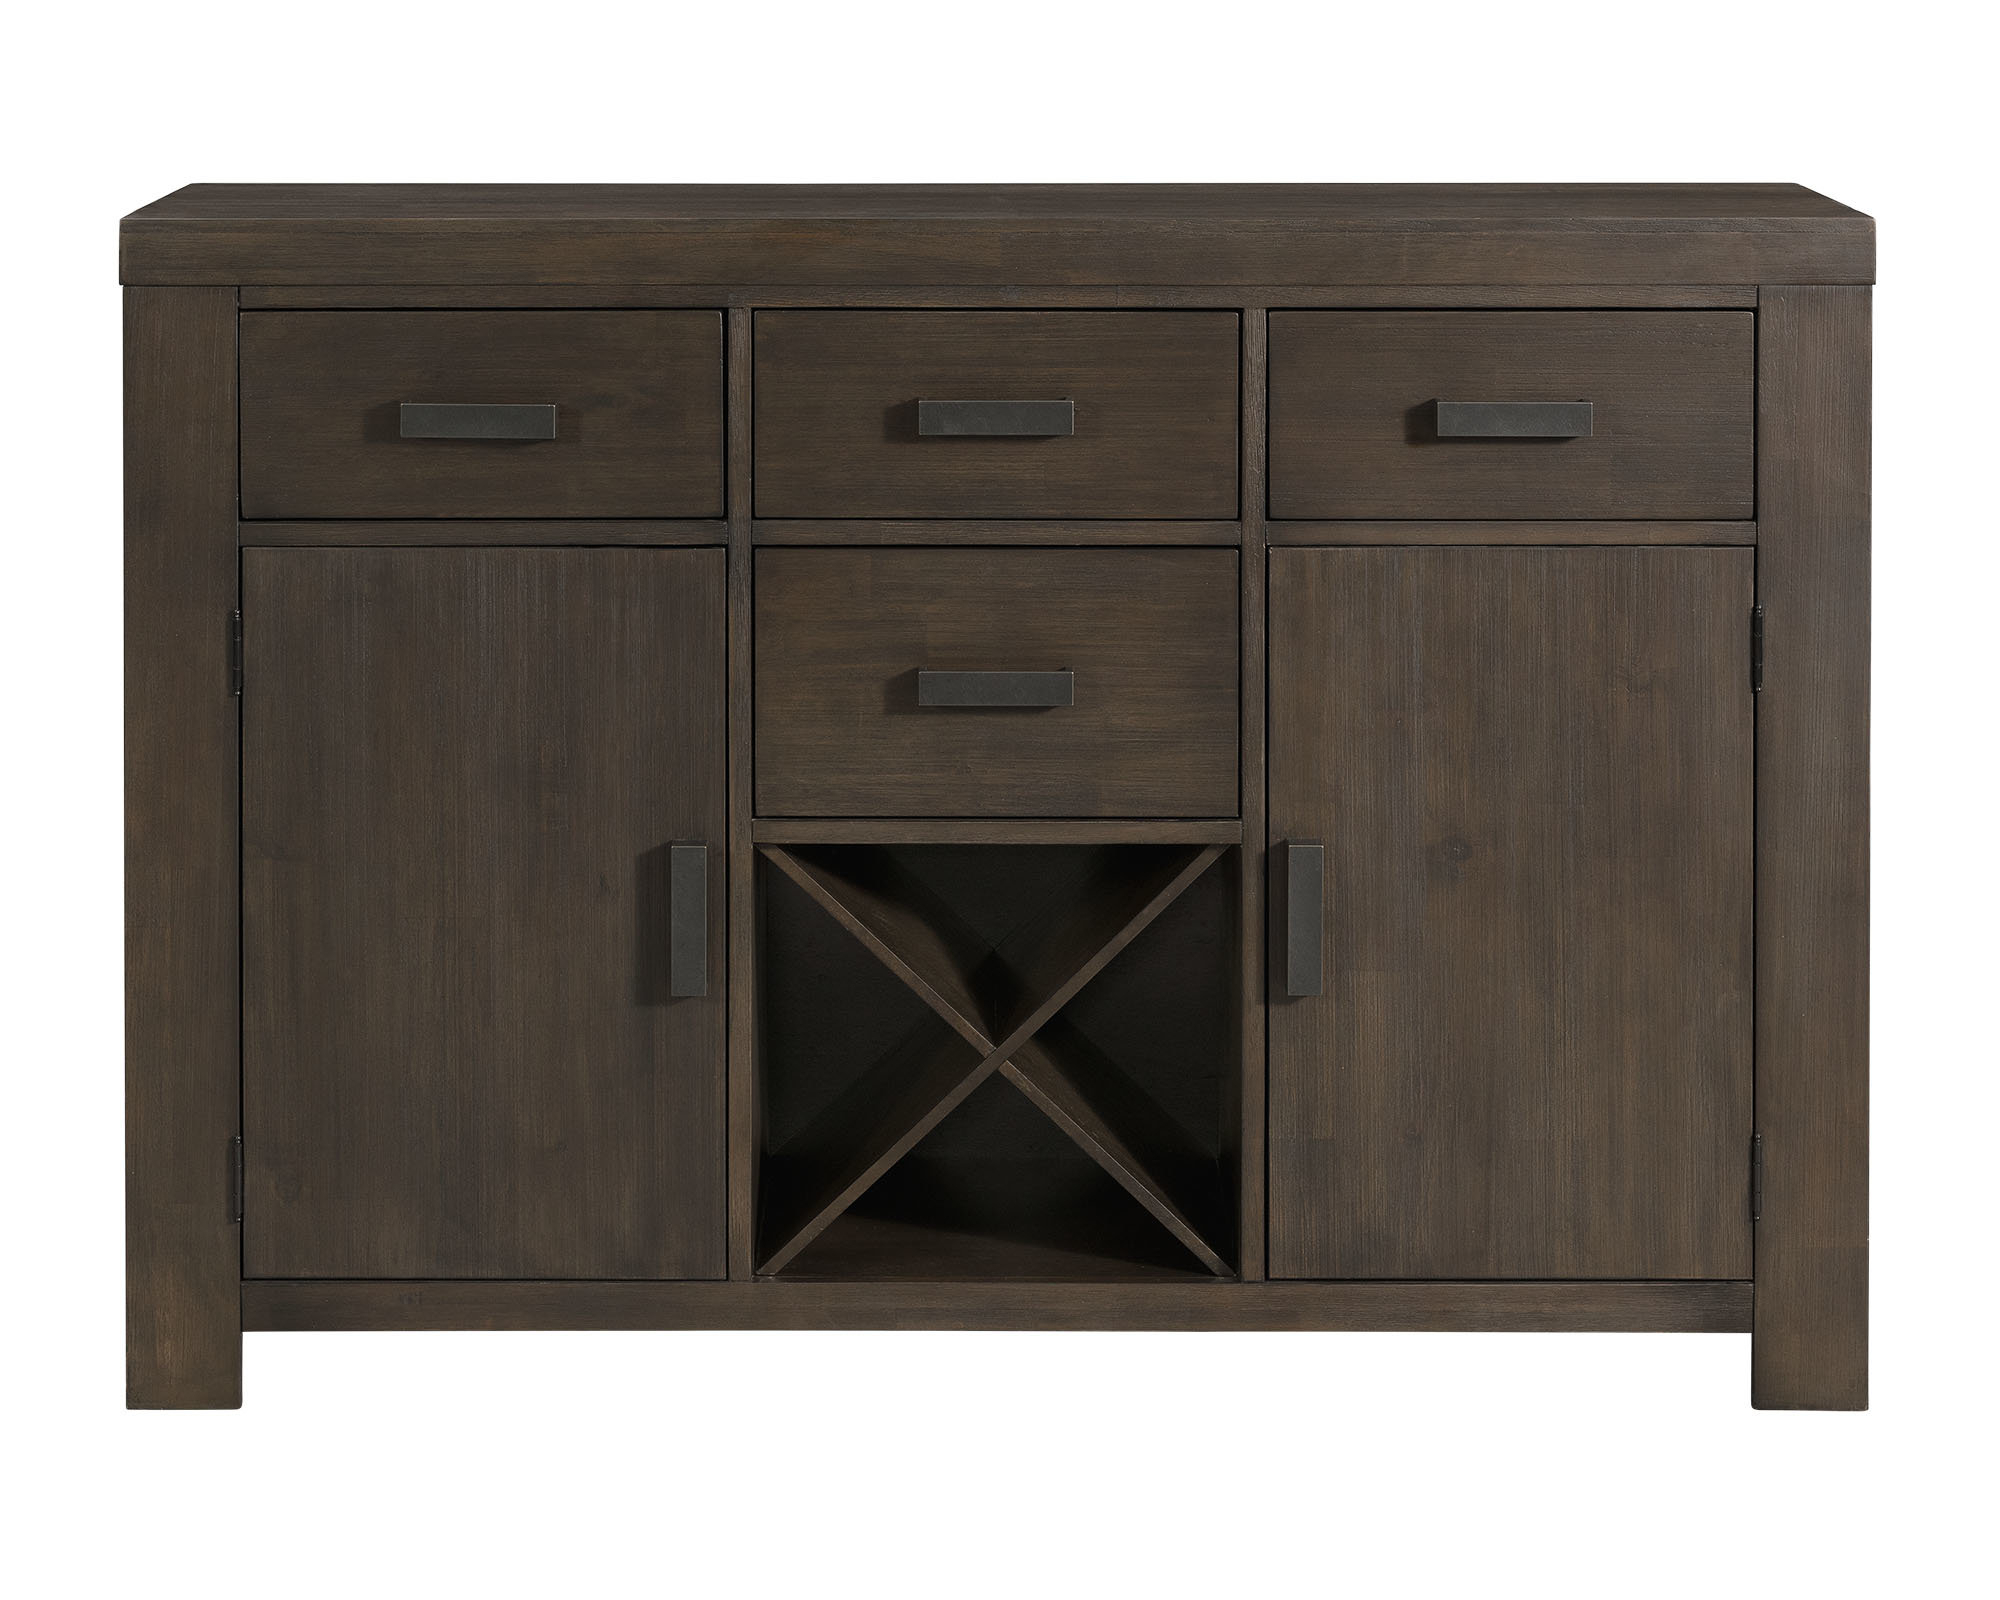 Acacia Sideboards & Buffets You'll Love In 2019 | Wayfair With Regard To Colborne Sideboards (View 2 of 30)